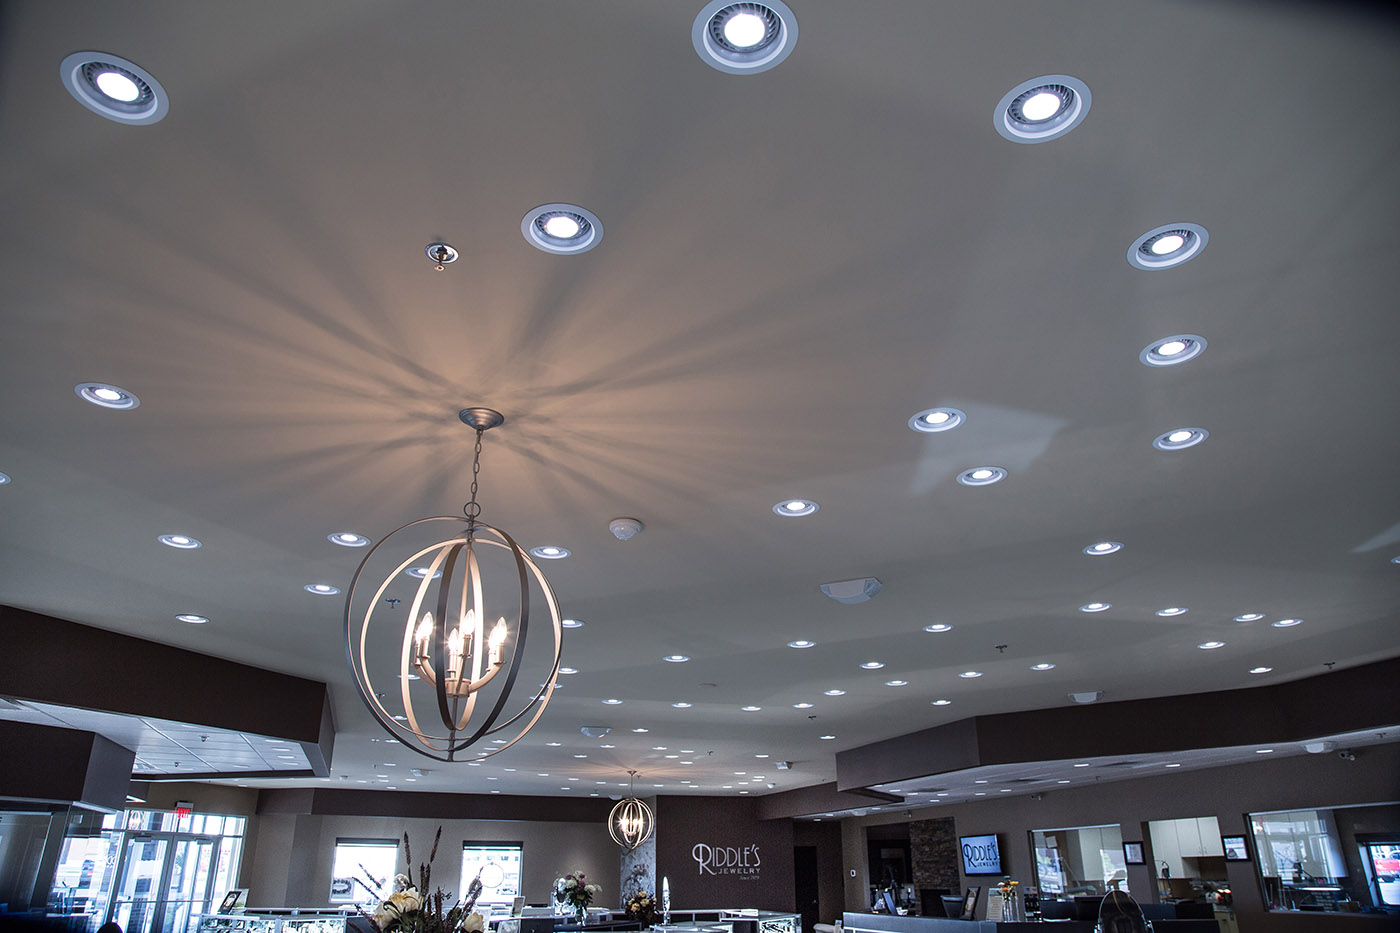 Creative jewelry display using a proper distribution of light zen ceiling lighting example for a jewelry store the specifics of retail lighting arubaitofo Choice Image